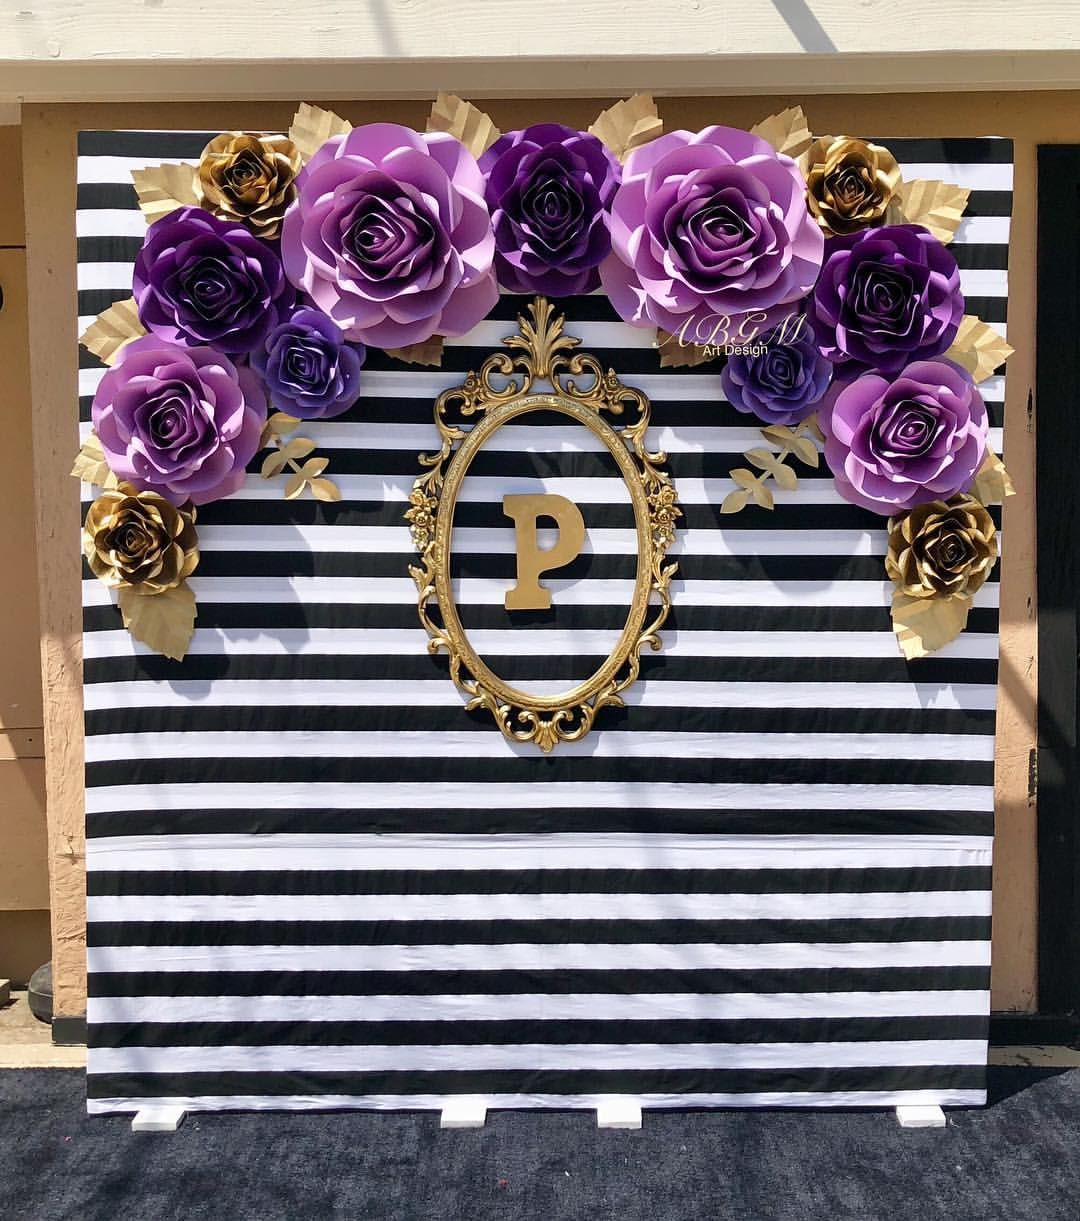 ROSES BACKDROP in different shades of purple colors made for Paula